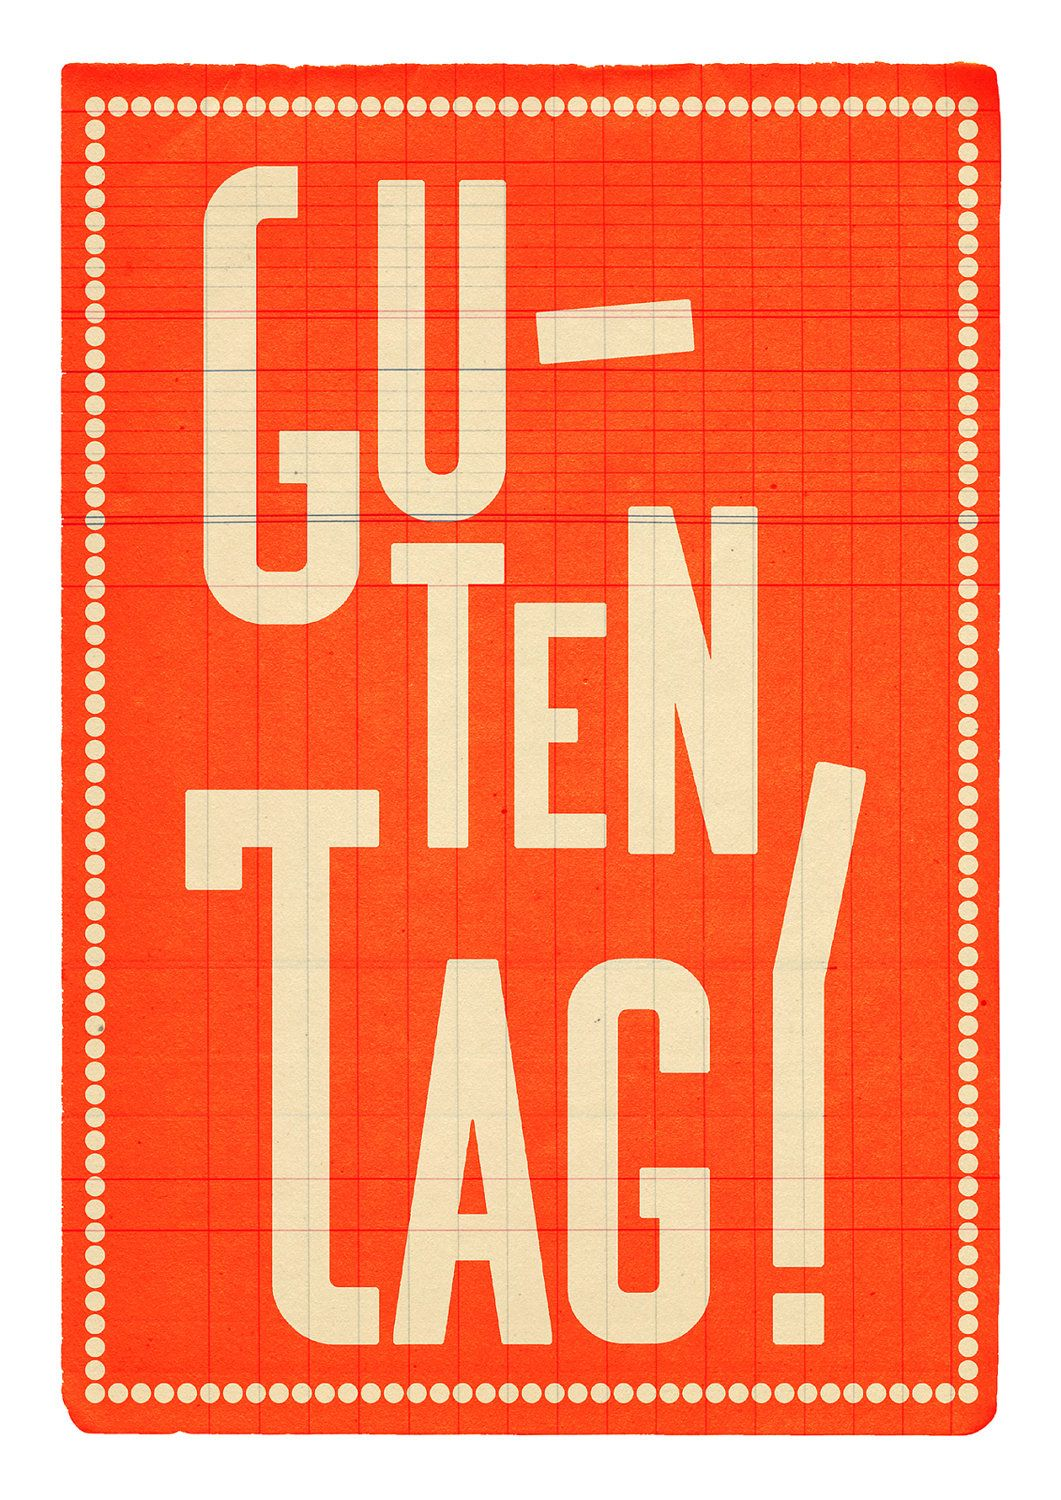 German Large Print X A3 Guten Tag Orange By